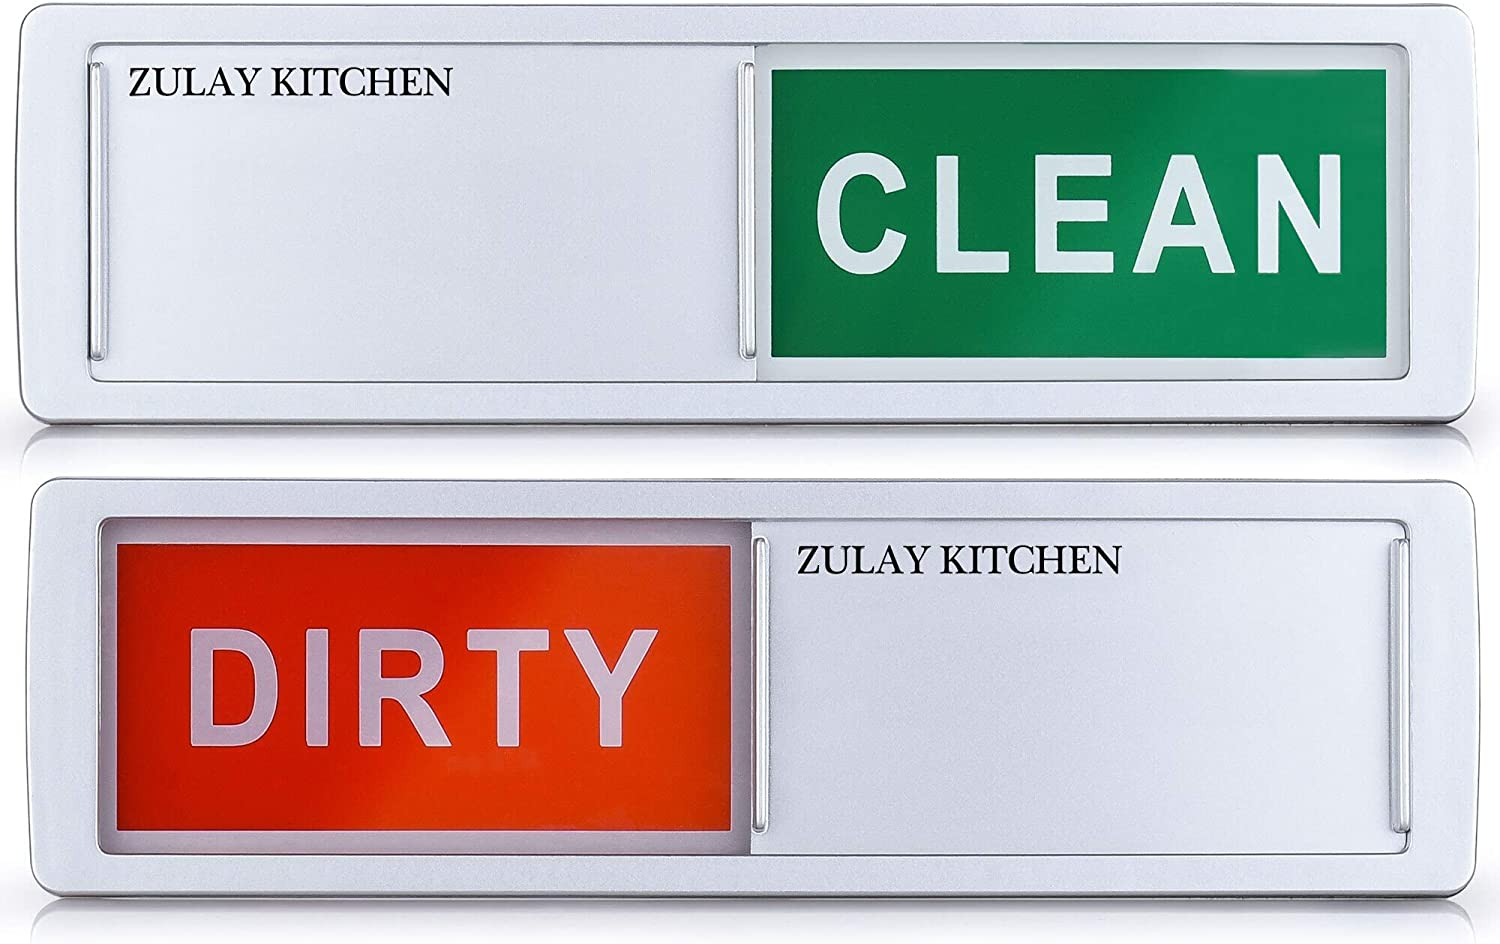 Zulay Dishwasher Clean Dirty Magnet - Free Shipping Cheap Bargain Gift Strong Arlington Mall Di Sign